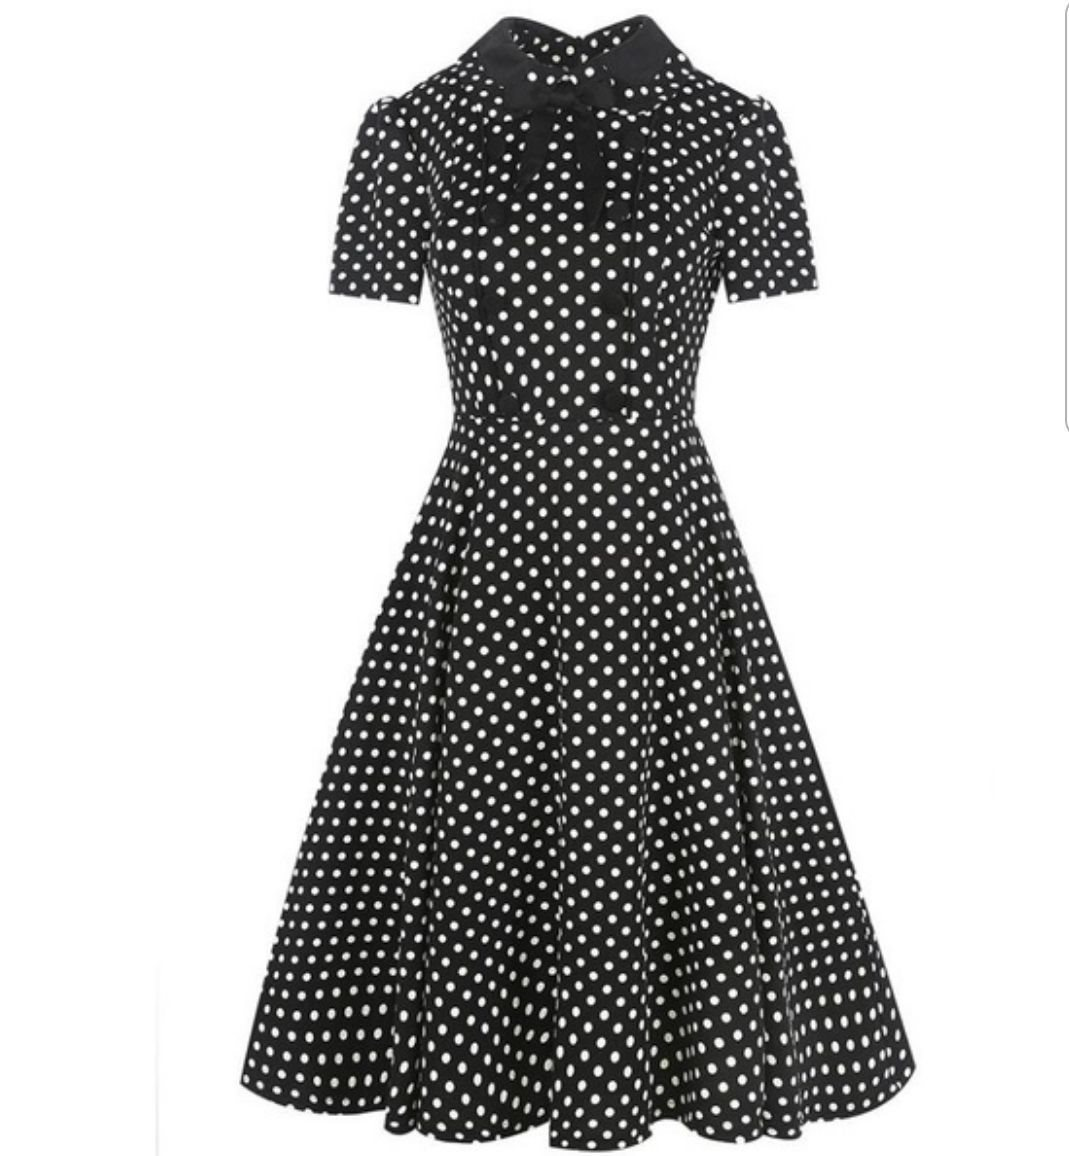 prickig klänning 50 tal rockabilly retro